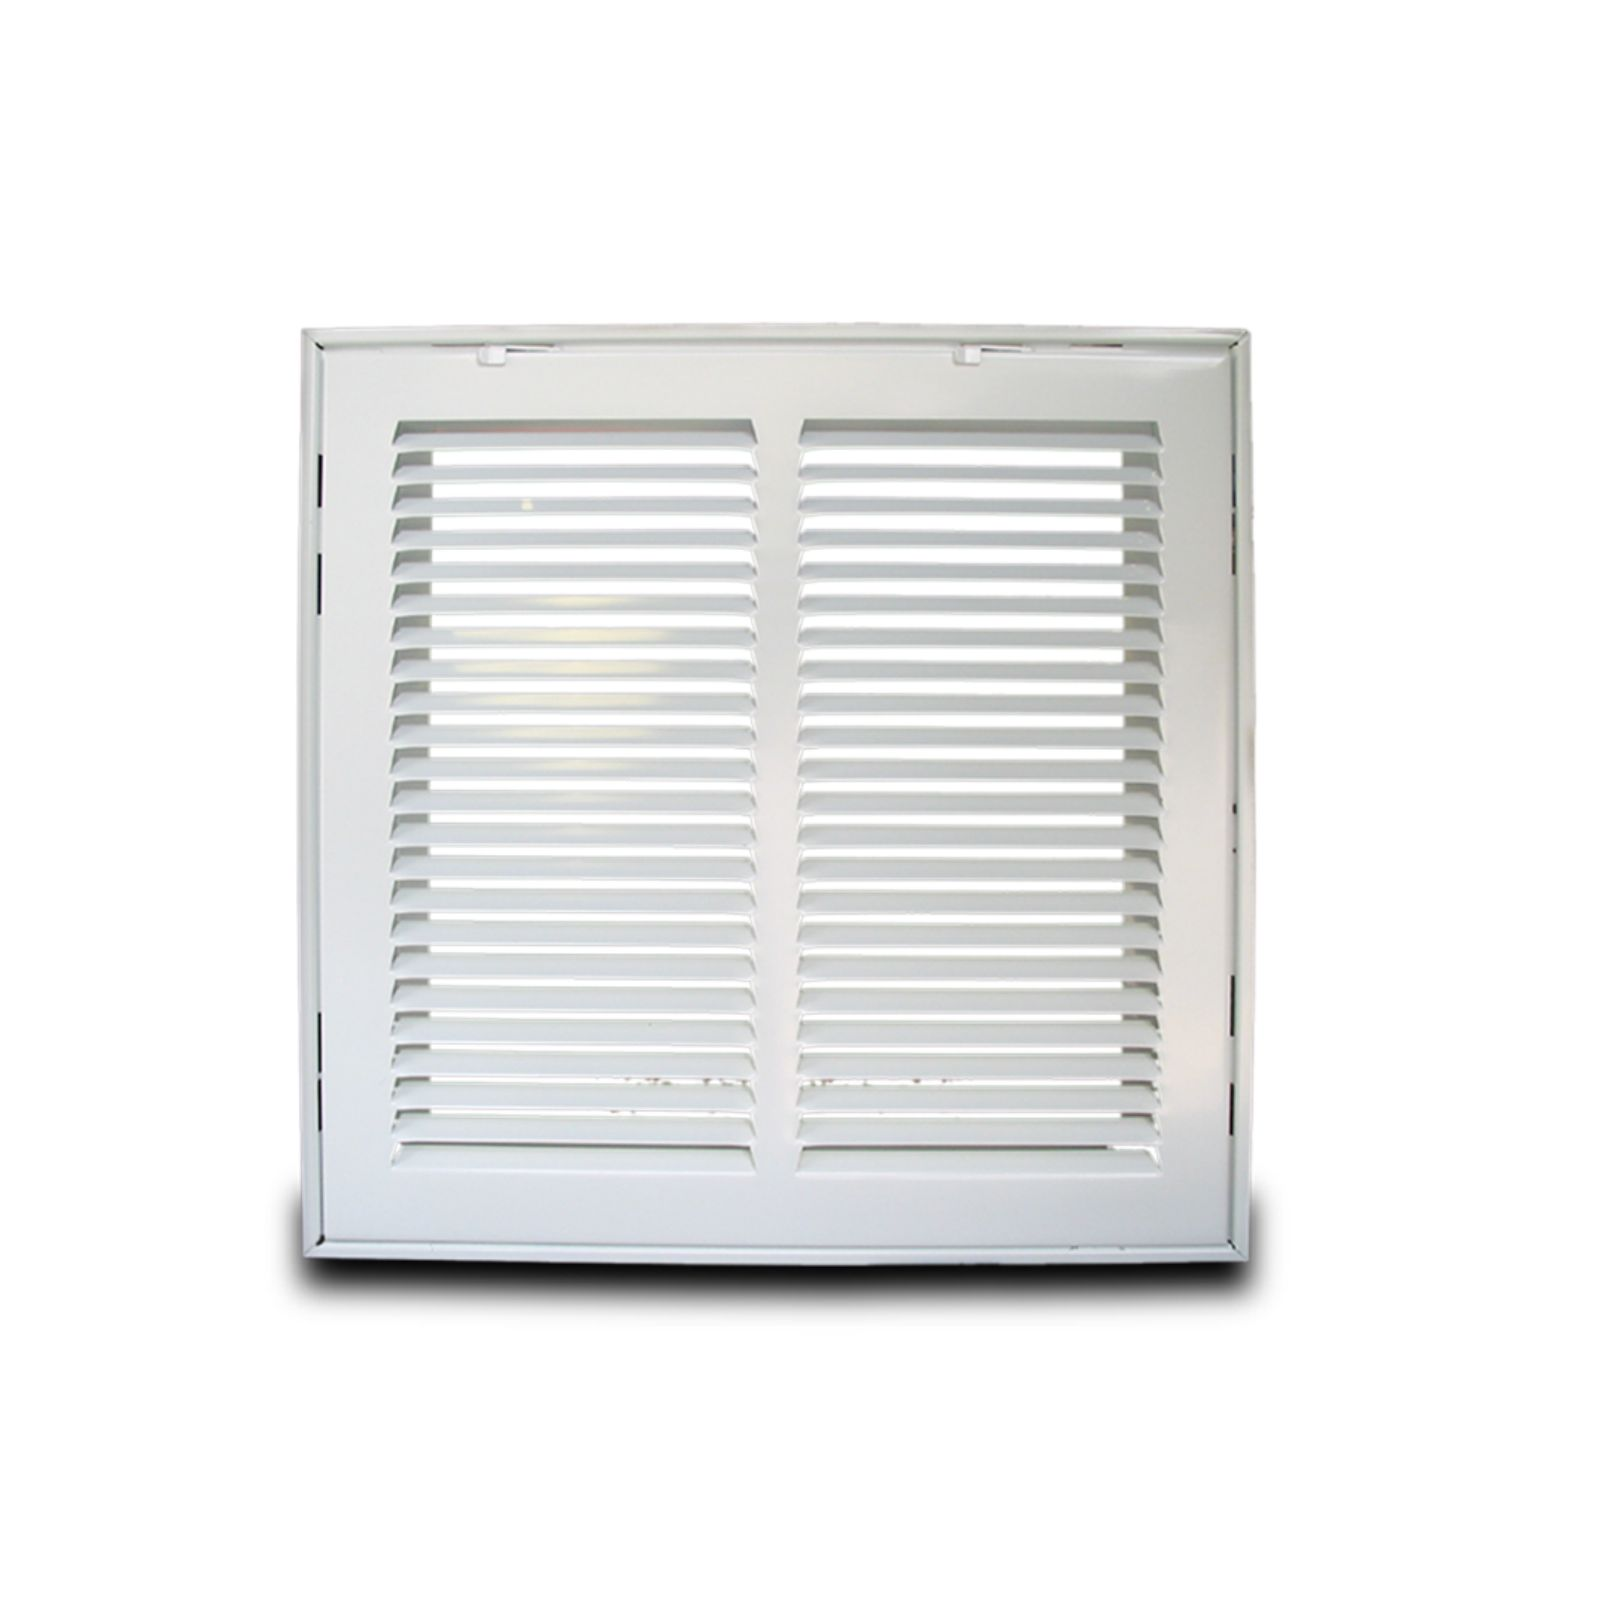 "Metal-Fab MFRFG2016W - Metal Fab Return Filter Grille, White, 20"" X 16"""